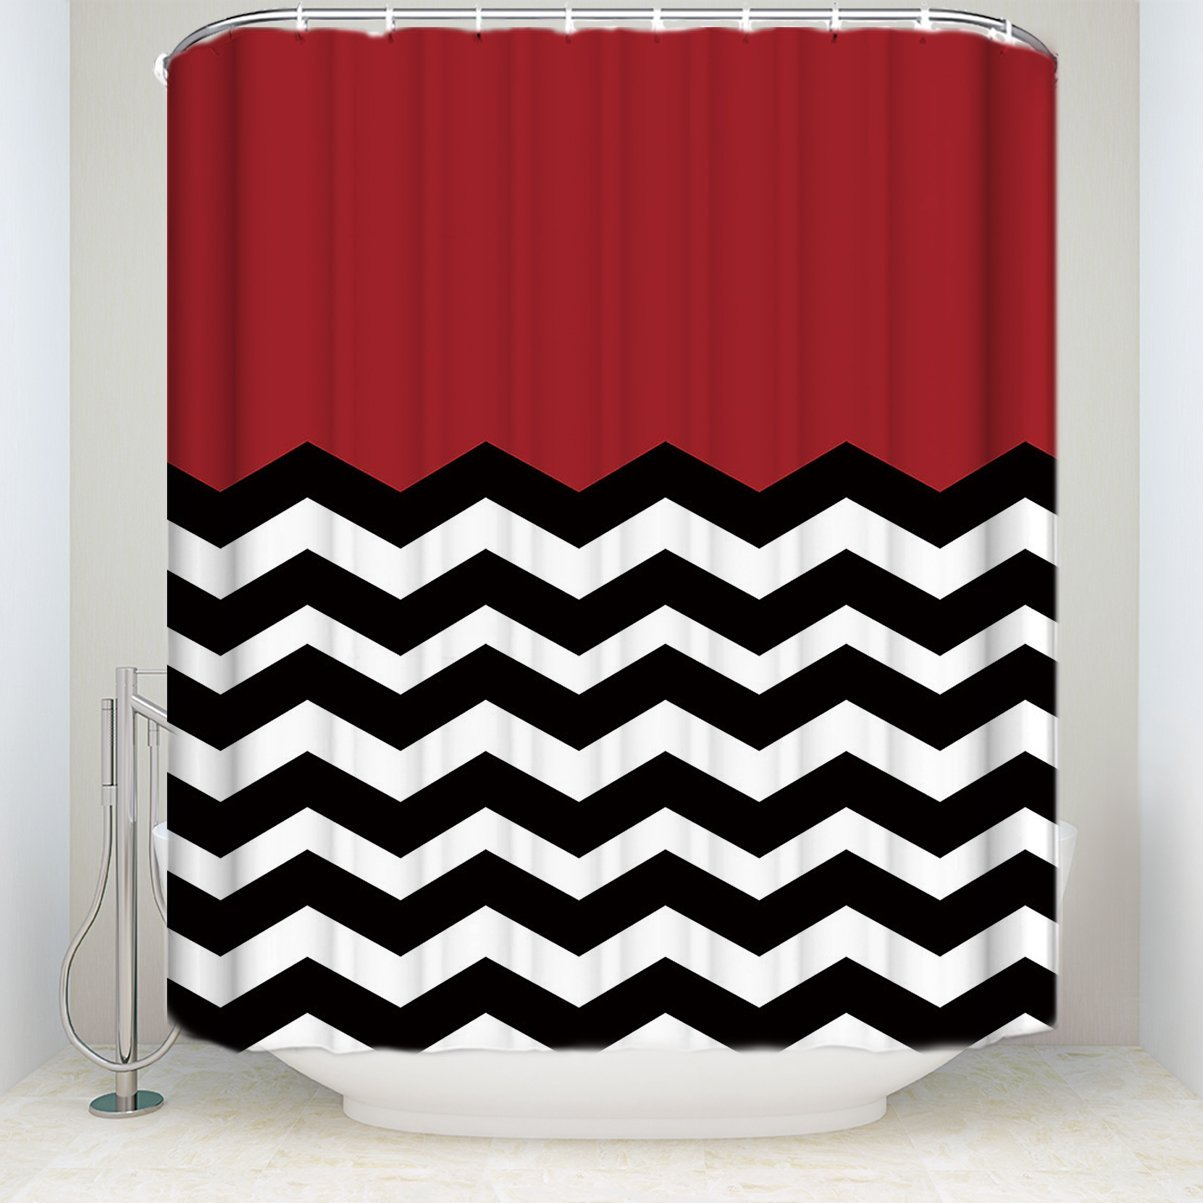 Chevron Waterproof Polyester Fabric Shower Curtain Red White Black Striped Mold Resistant Curtains In From Home Garden On